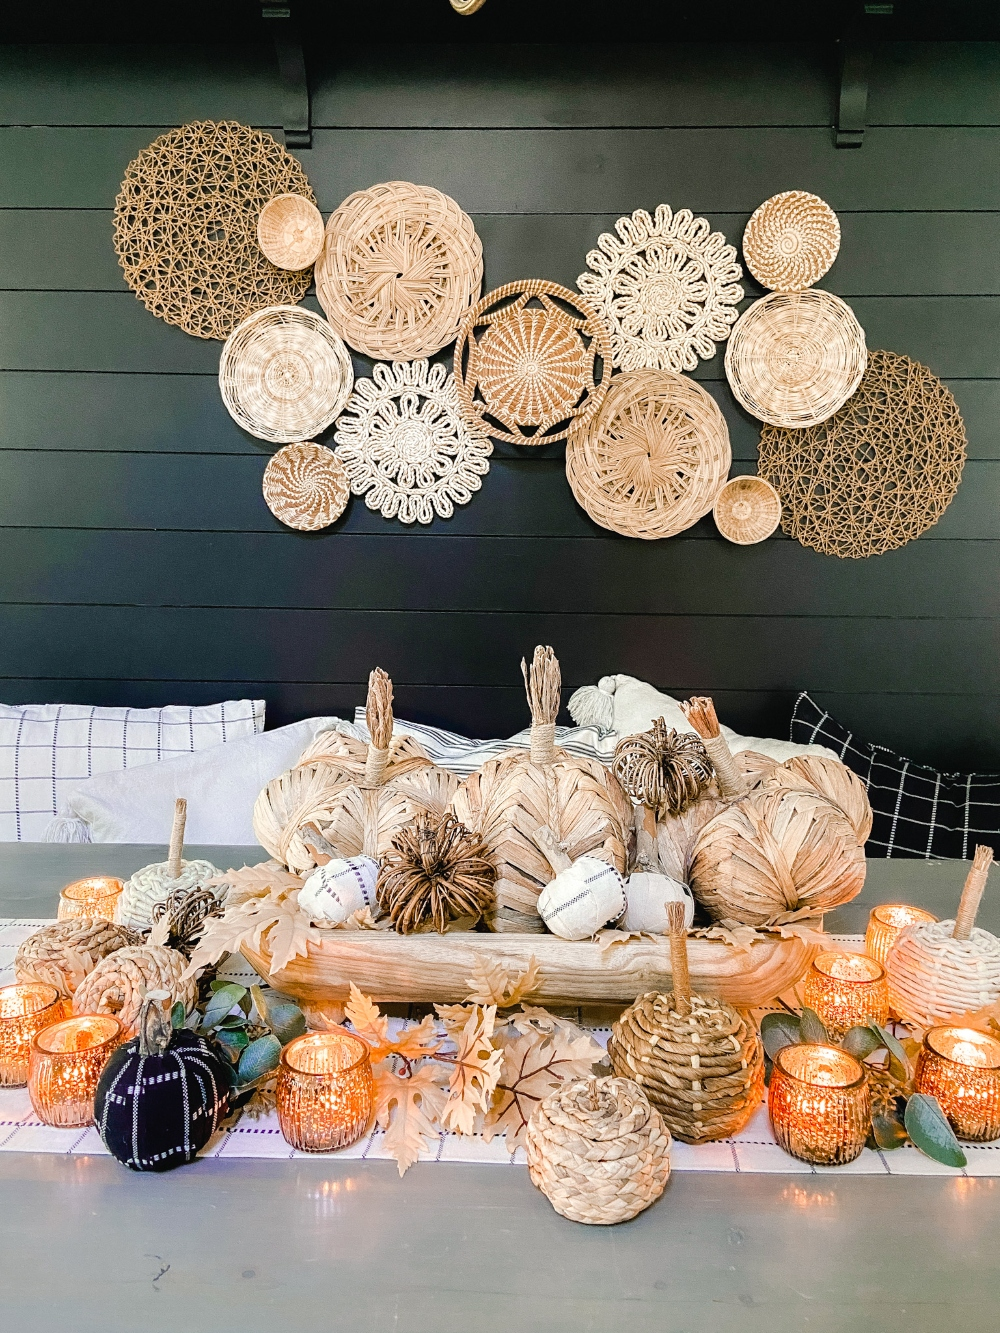 #ad I partnered with #HobbyLobby to create a cozy fall dining nook! With three DIY projects -- a NO-sew table runner, fabric-wrapped pumpkins and a footed fall centerpiece. All Fall Shop items are 40% right now! #HobbyLobbyFinds (link)